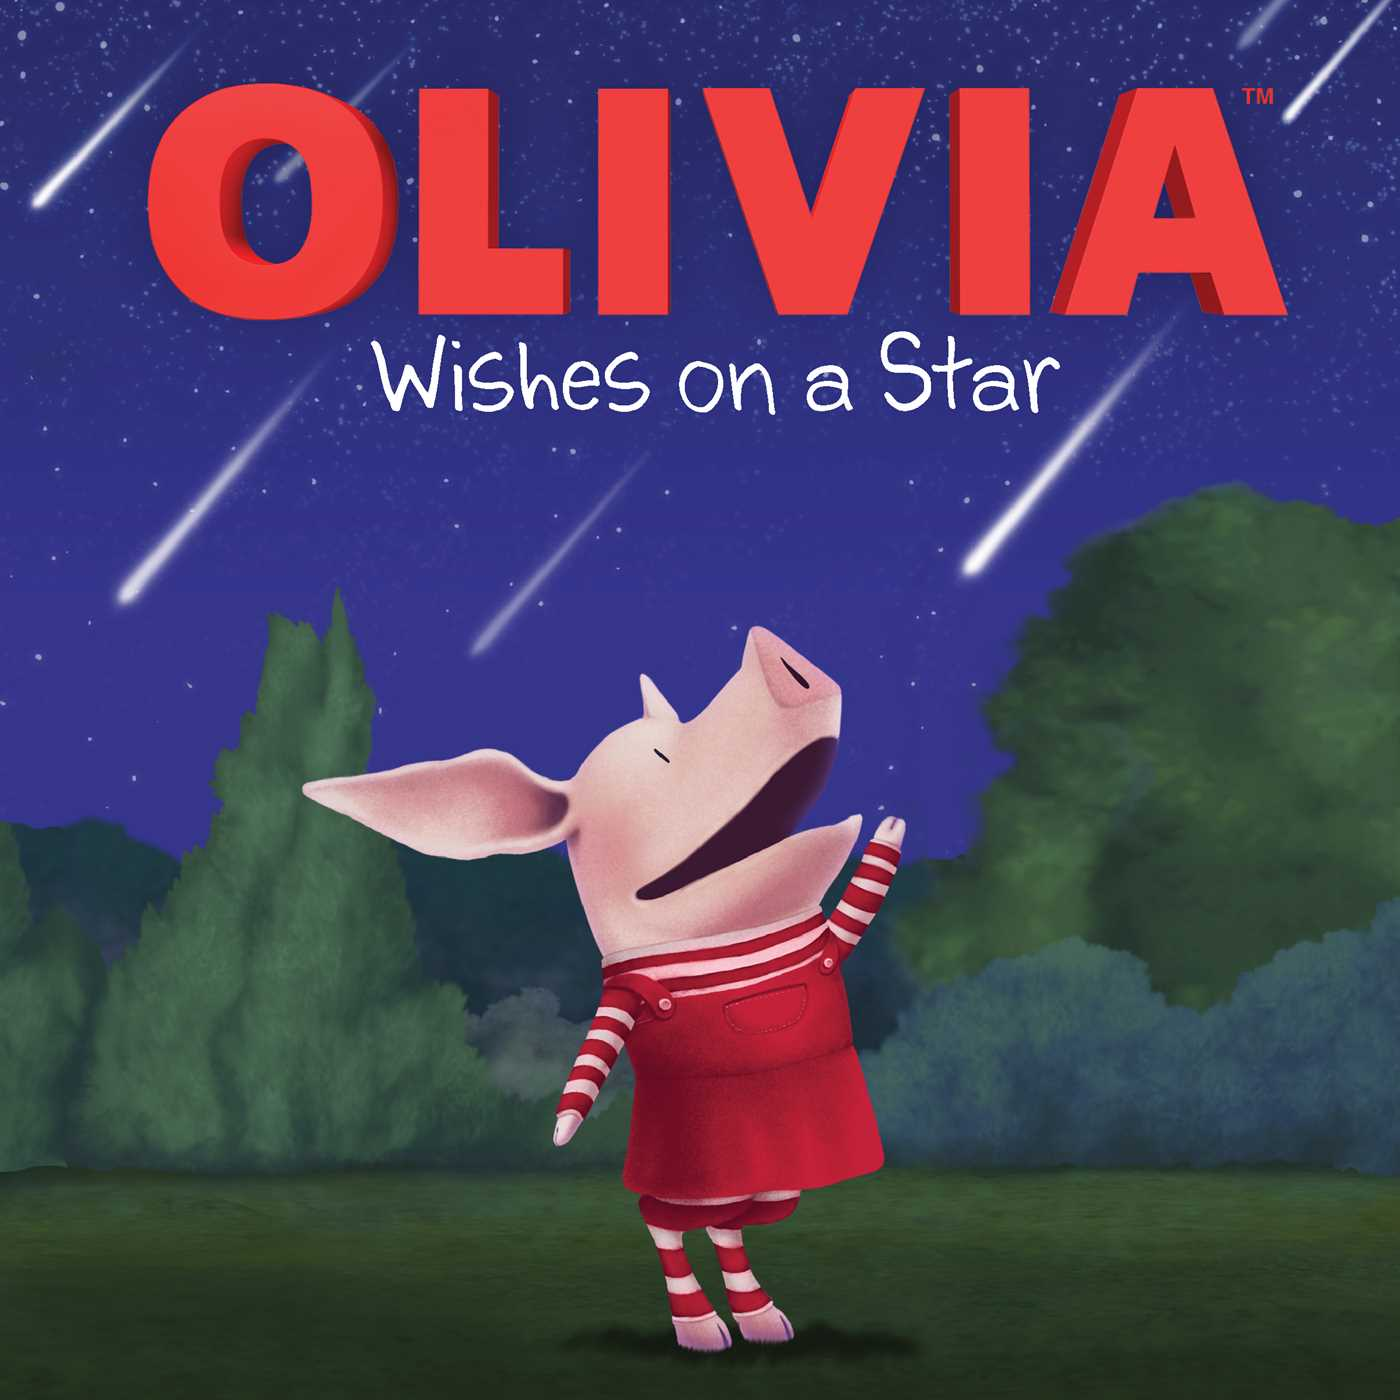 Olivia-wishes-on-a-star-9781481417693_hr